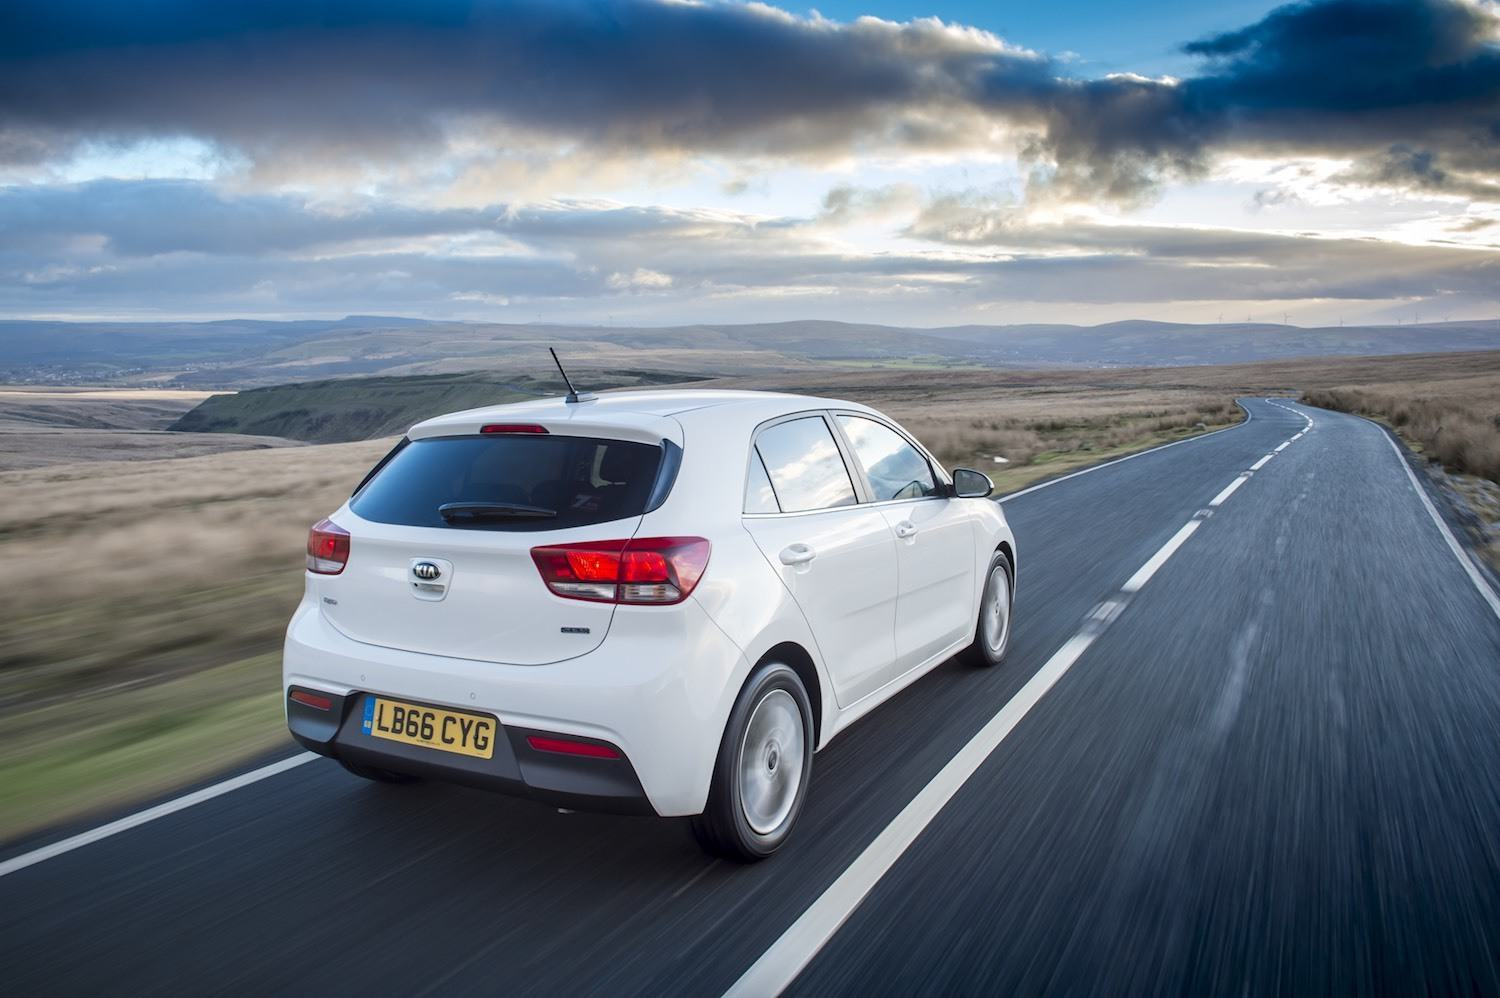 Neil Lyndon reviews the Kia Rio 1.4 CRDi 3 Eco for Drive 24